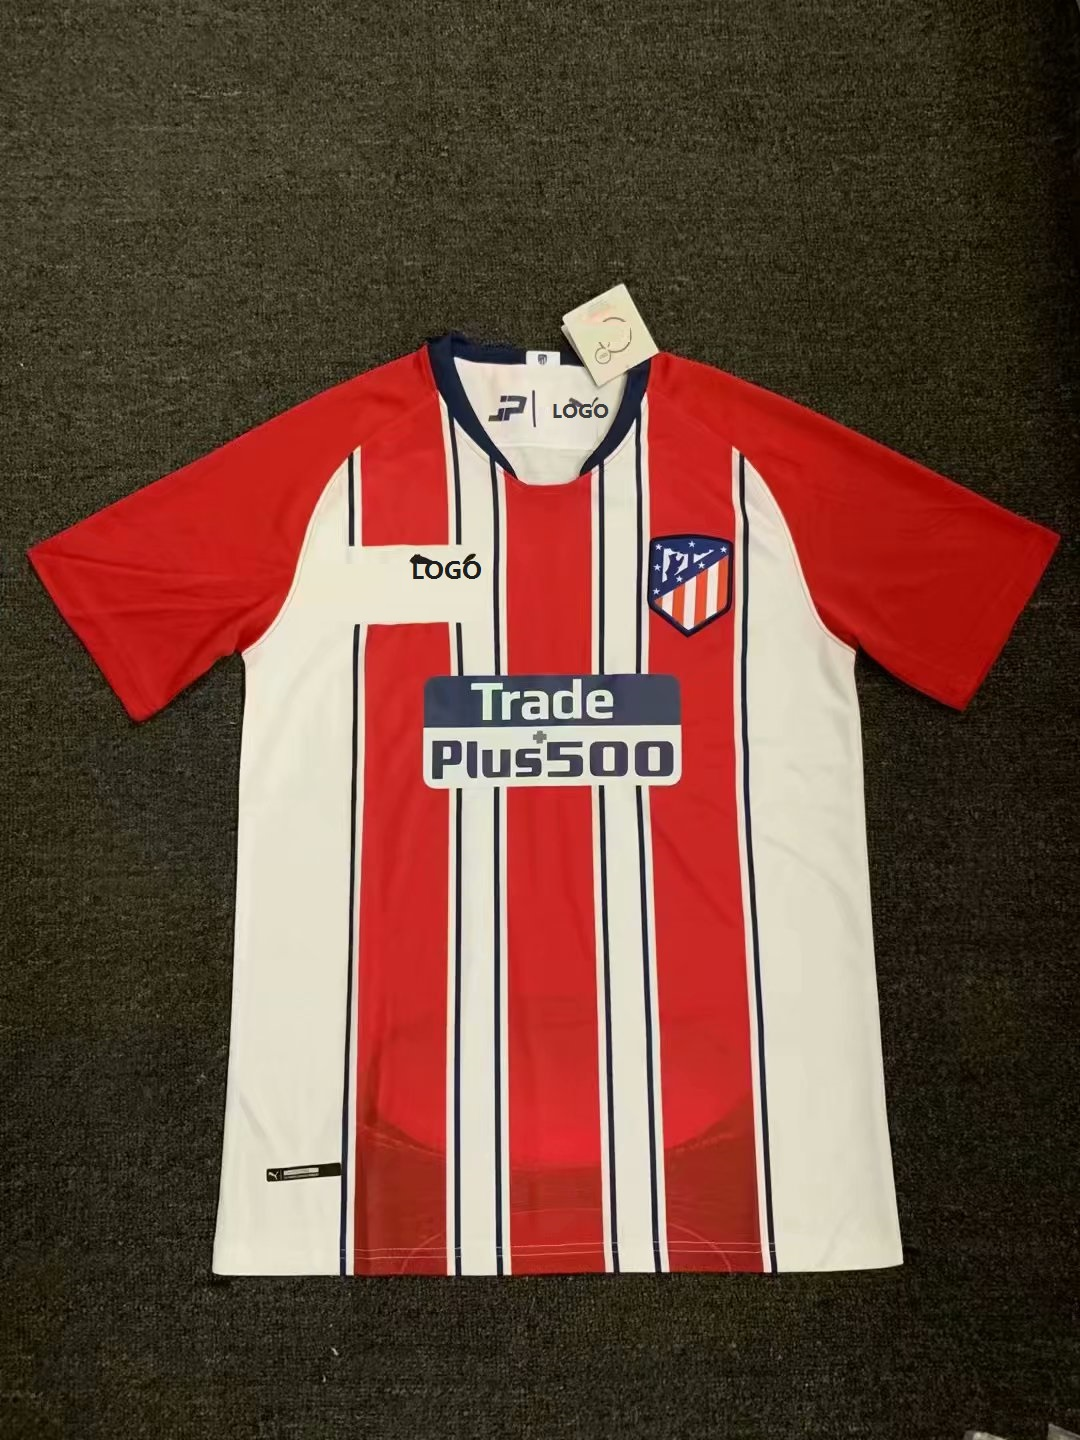 1c549a1f74d 2019-20 Men Atletico Madrid Home Soccer Jersey Thai Quality Item NO  578126